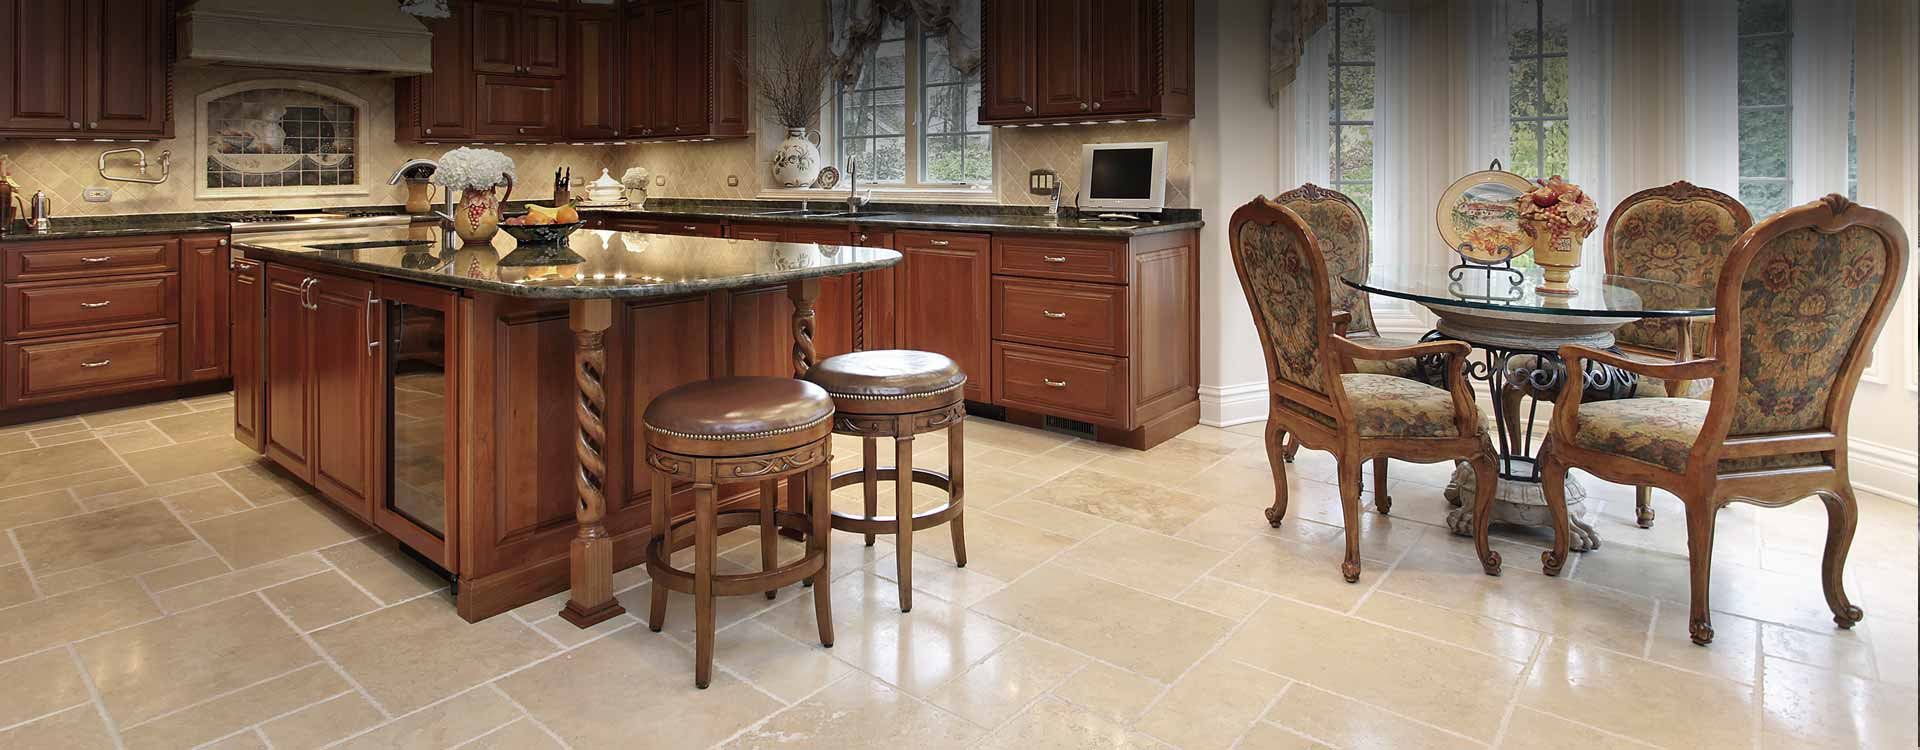 tile-grout-cleaning-home-1